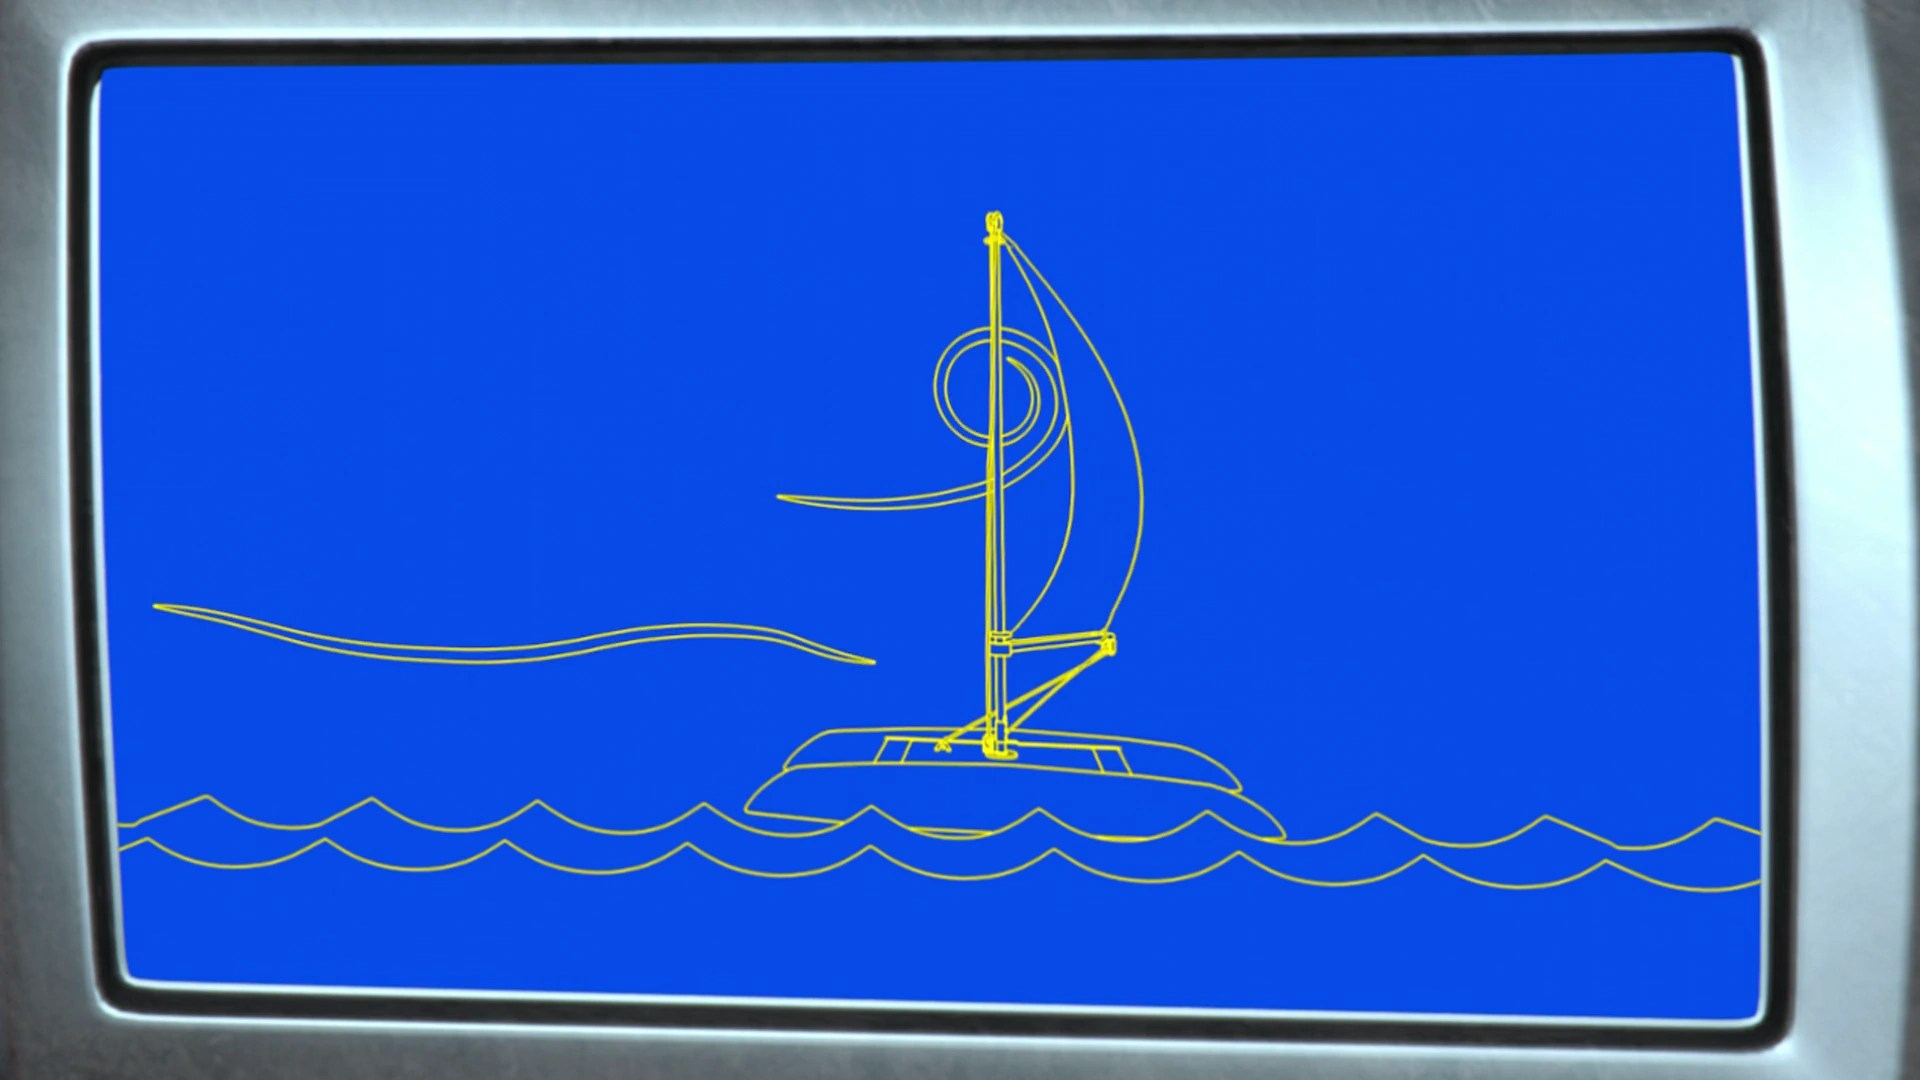 small resolution of s3e17 diagram of wind pushing a sailboat png